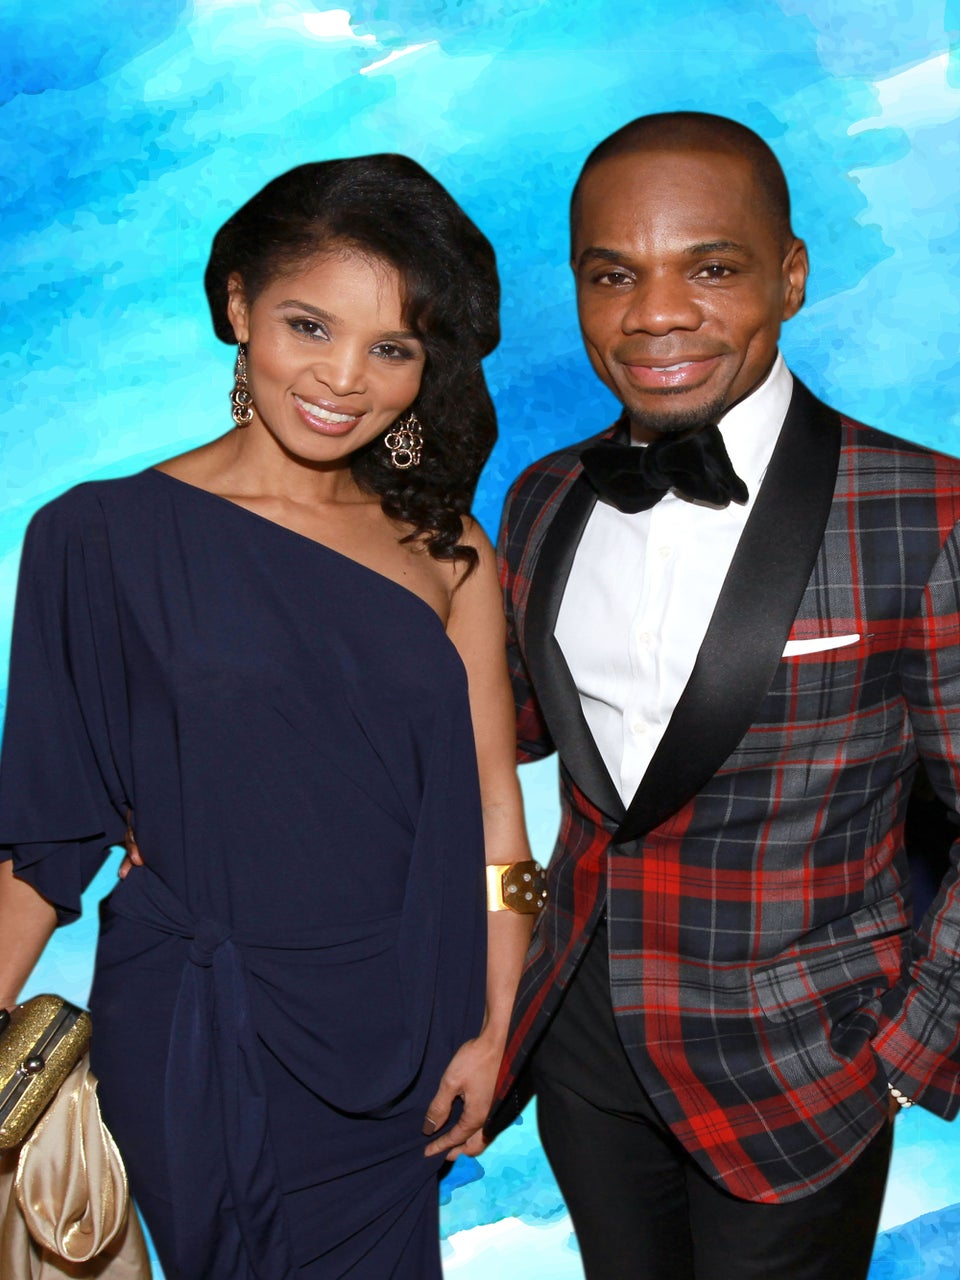 Kirk Franklin Surprises His Wife At Airport and Proves That After 20 Years Of Marriage The Romance Never Dies